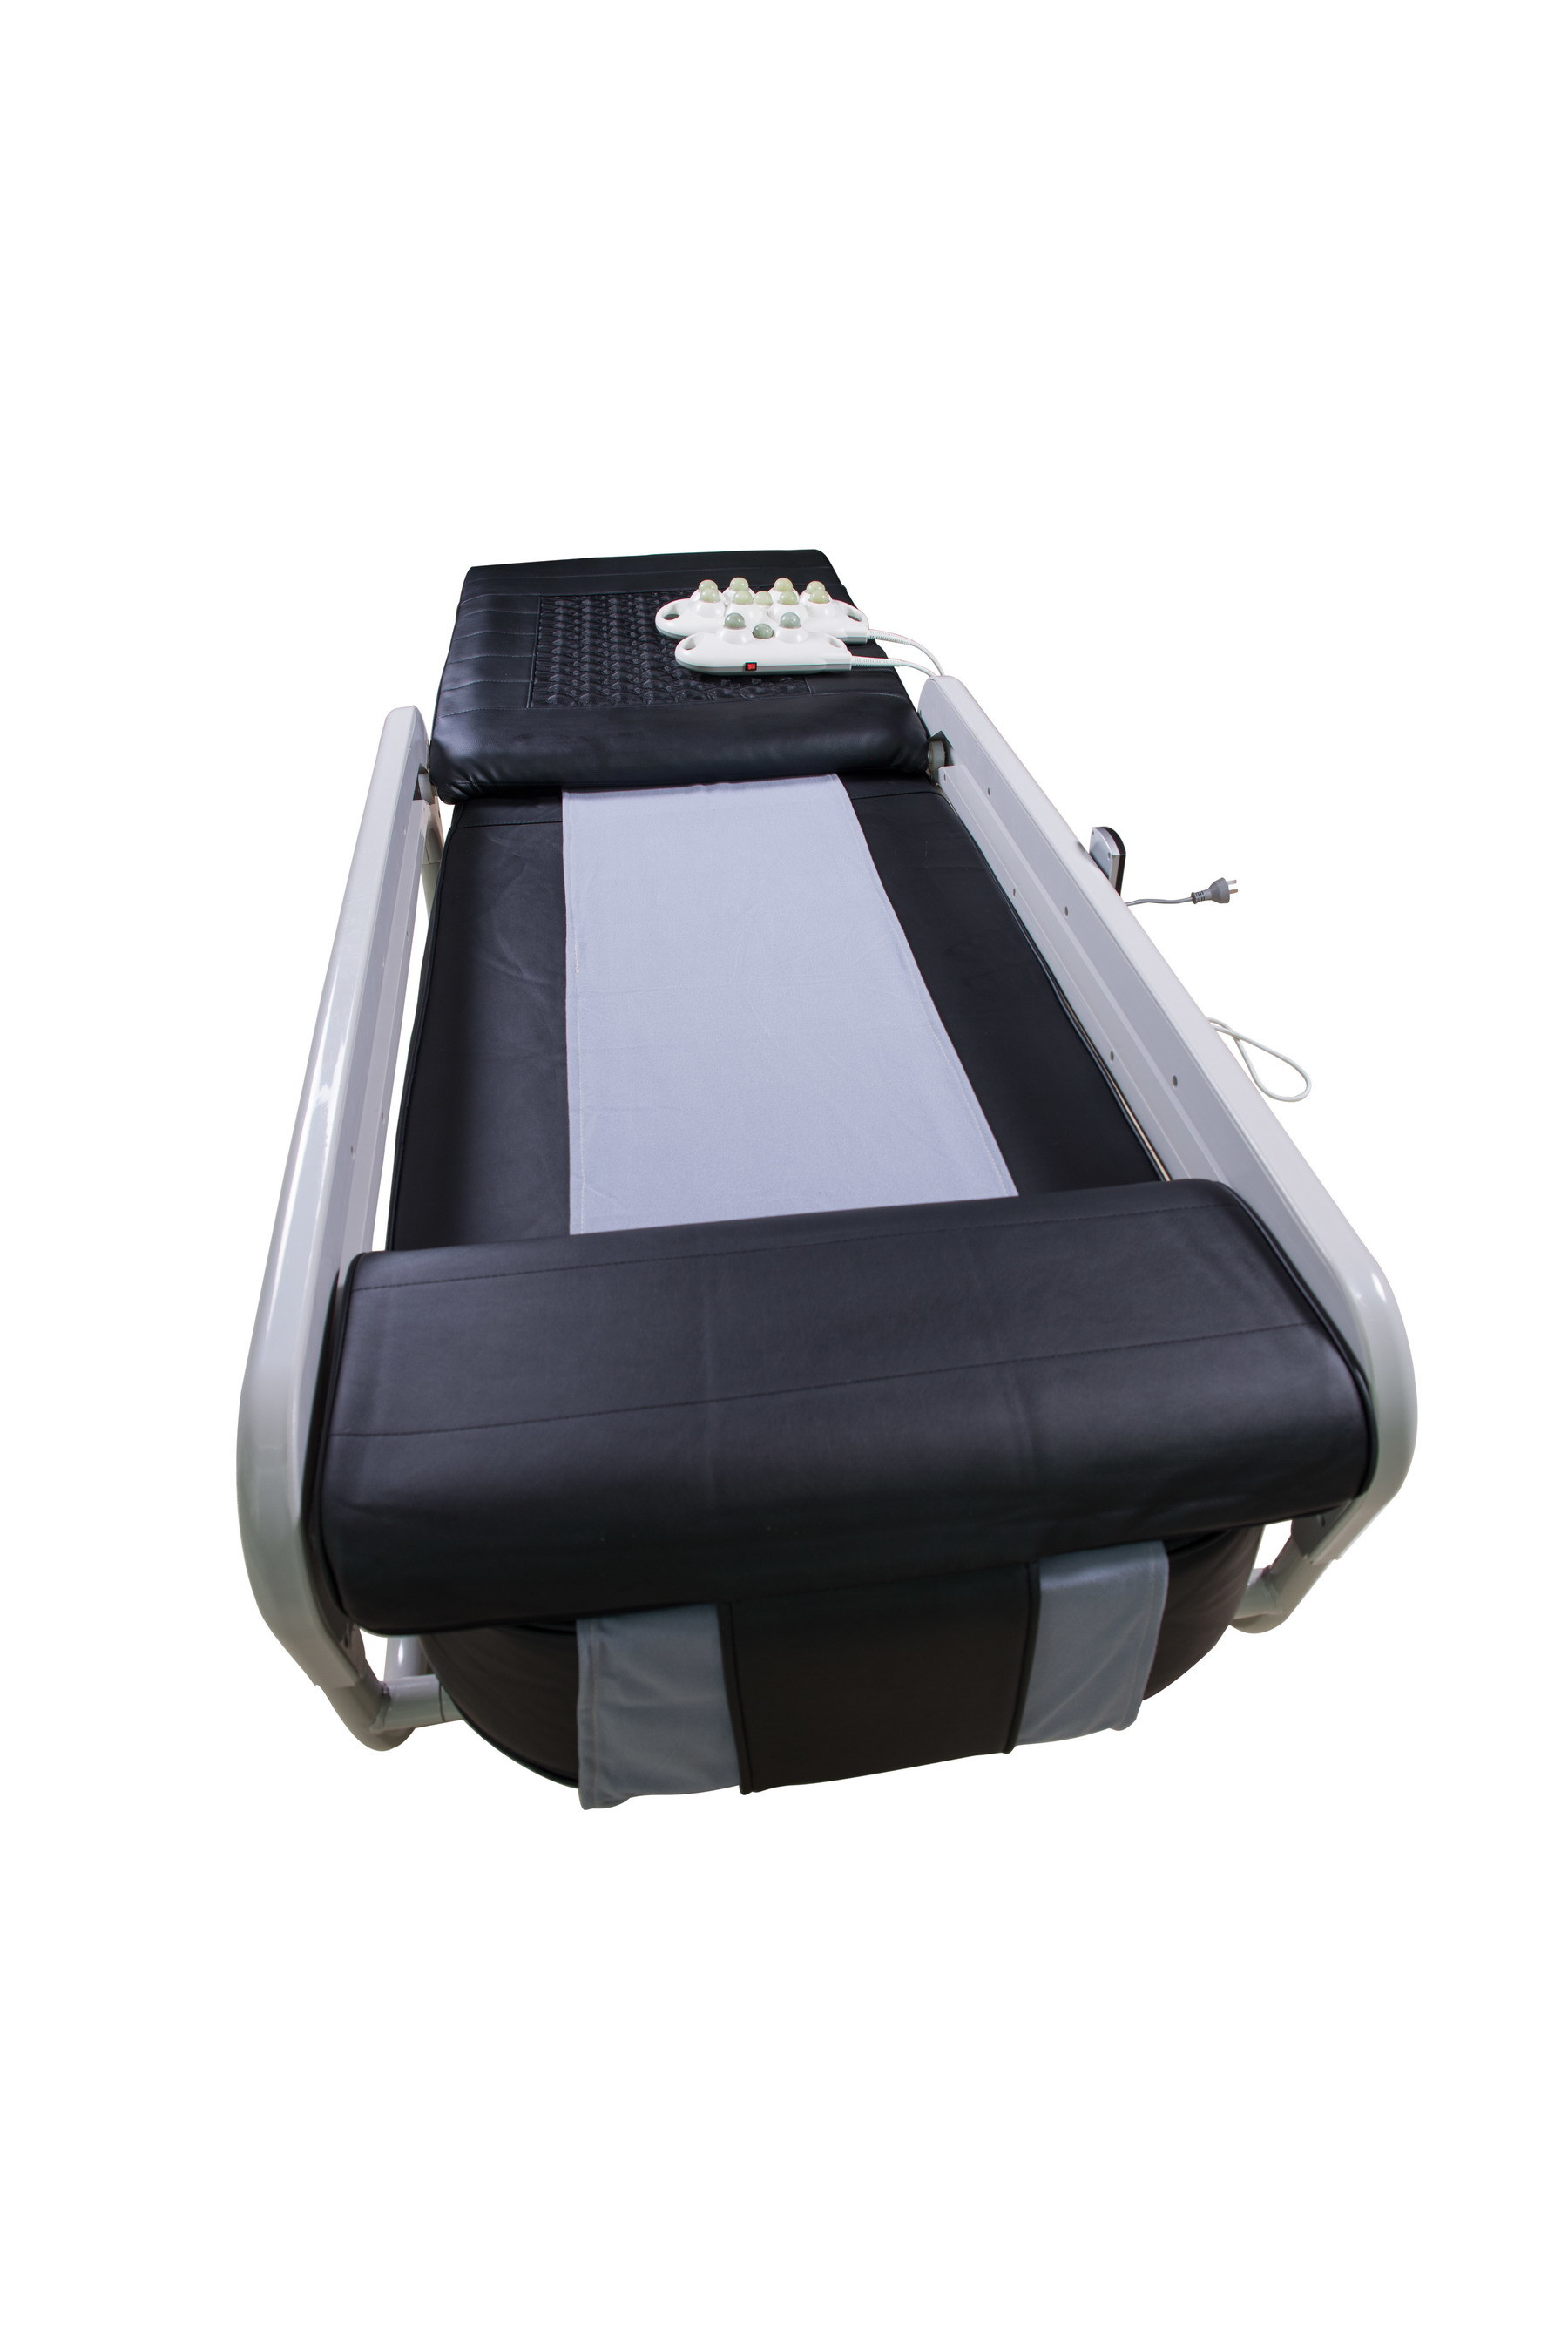 Jade Massage Bed Beauty SPA